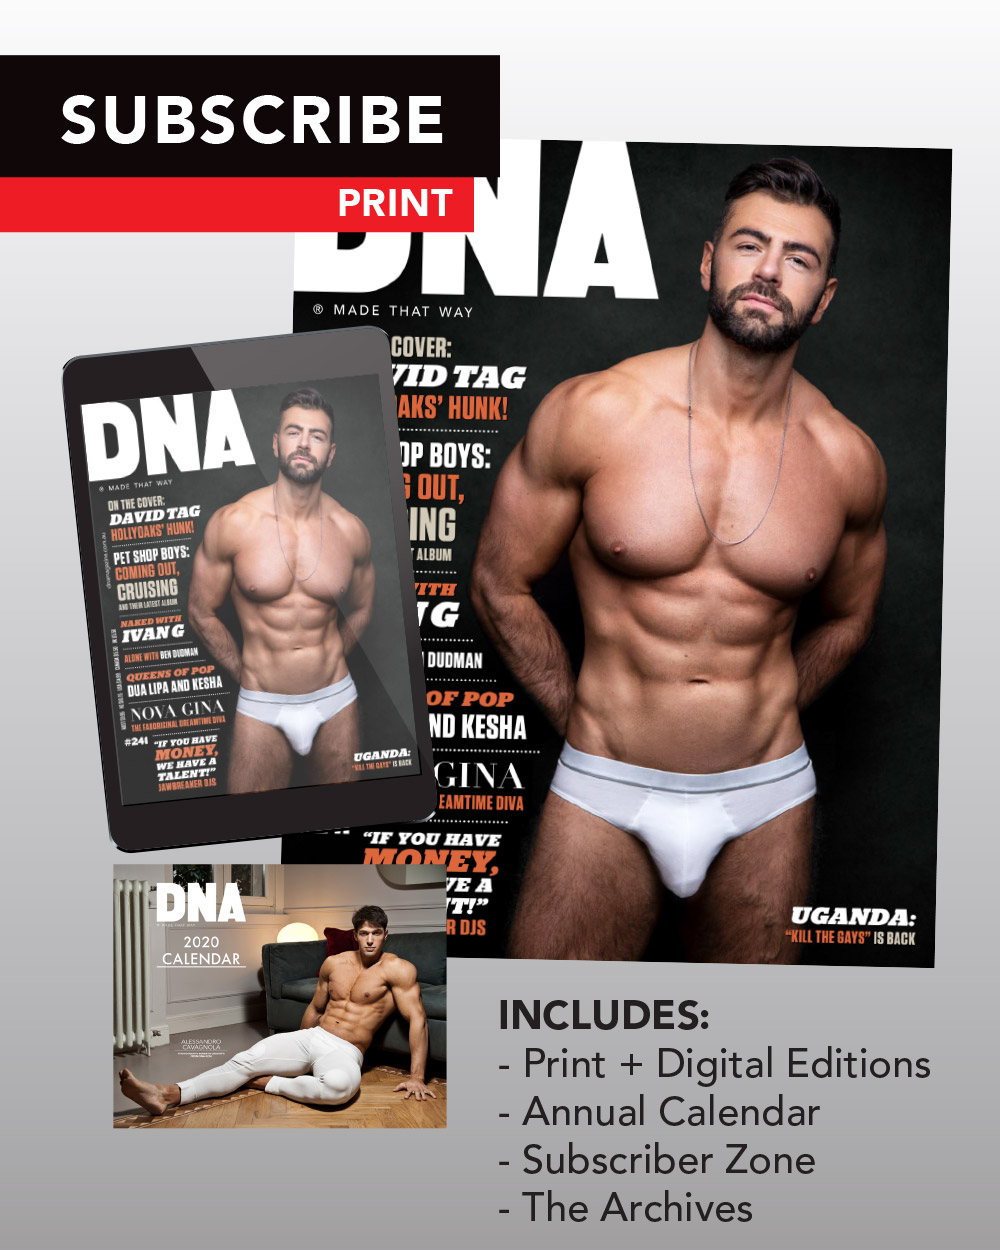 241_Subscribe-Print-Feature